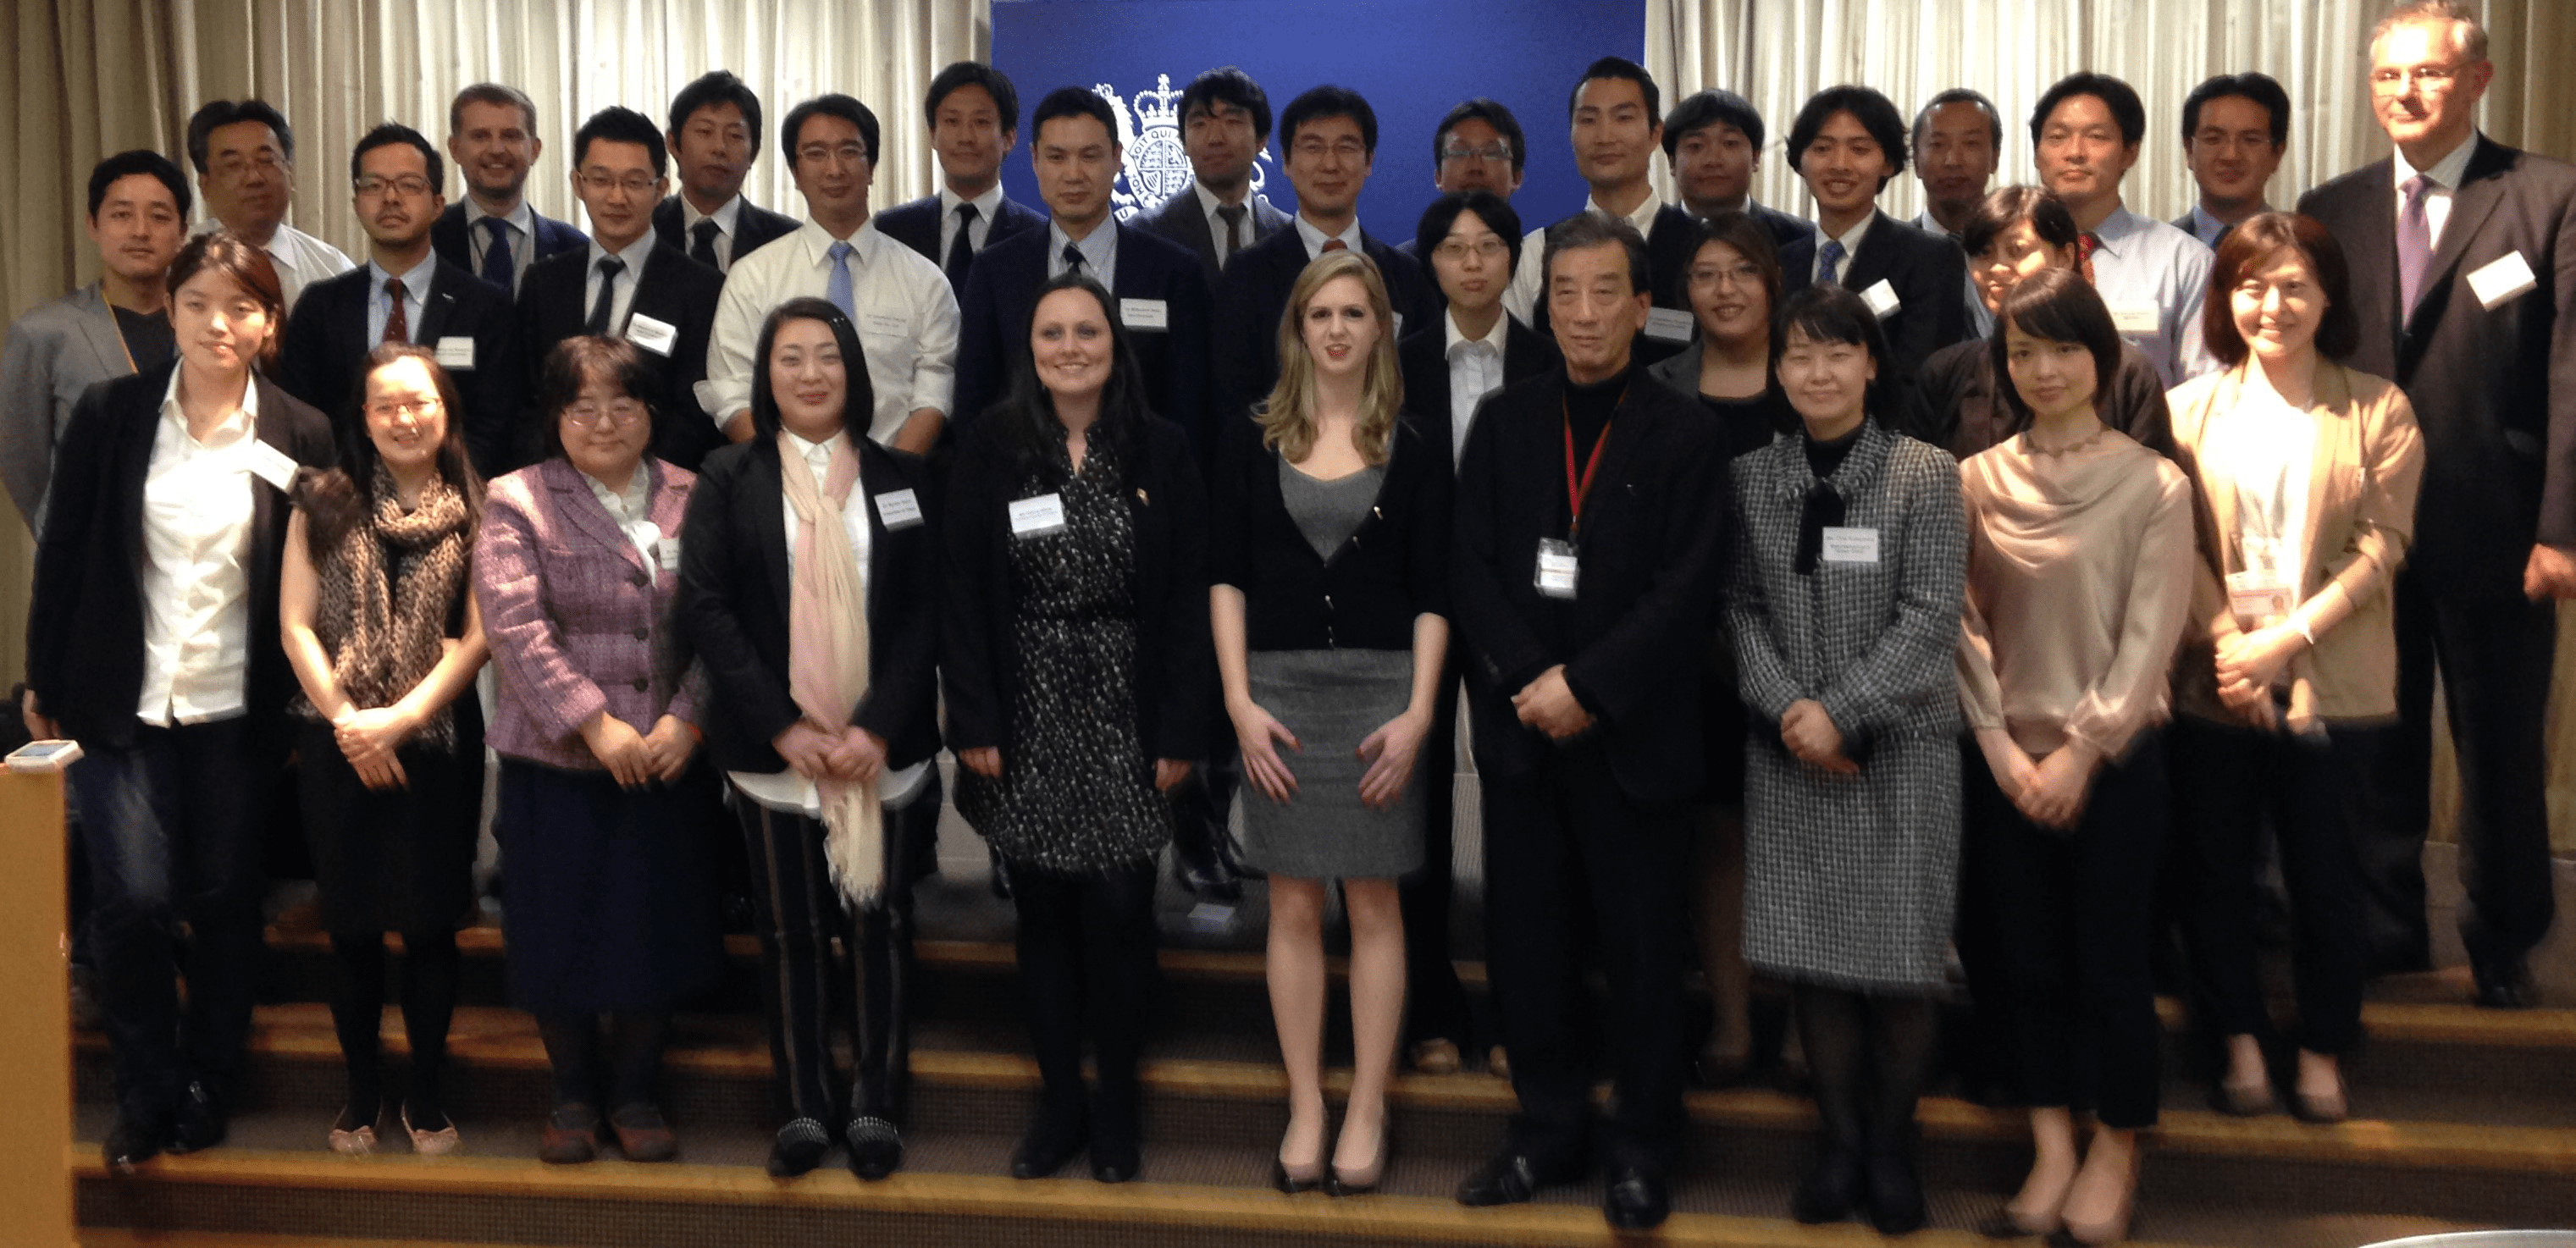 Japanese young leaders meeting, Tokyo, November 2014